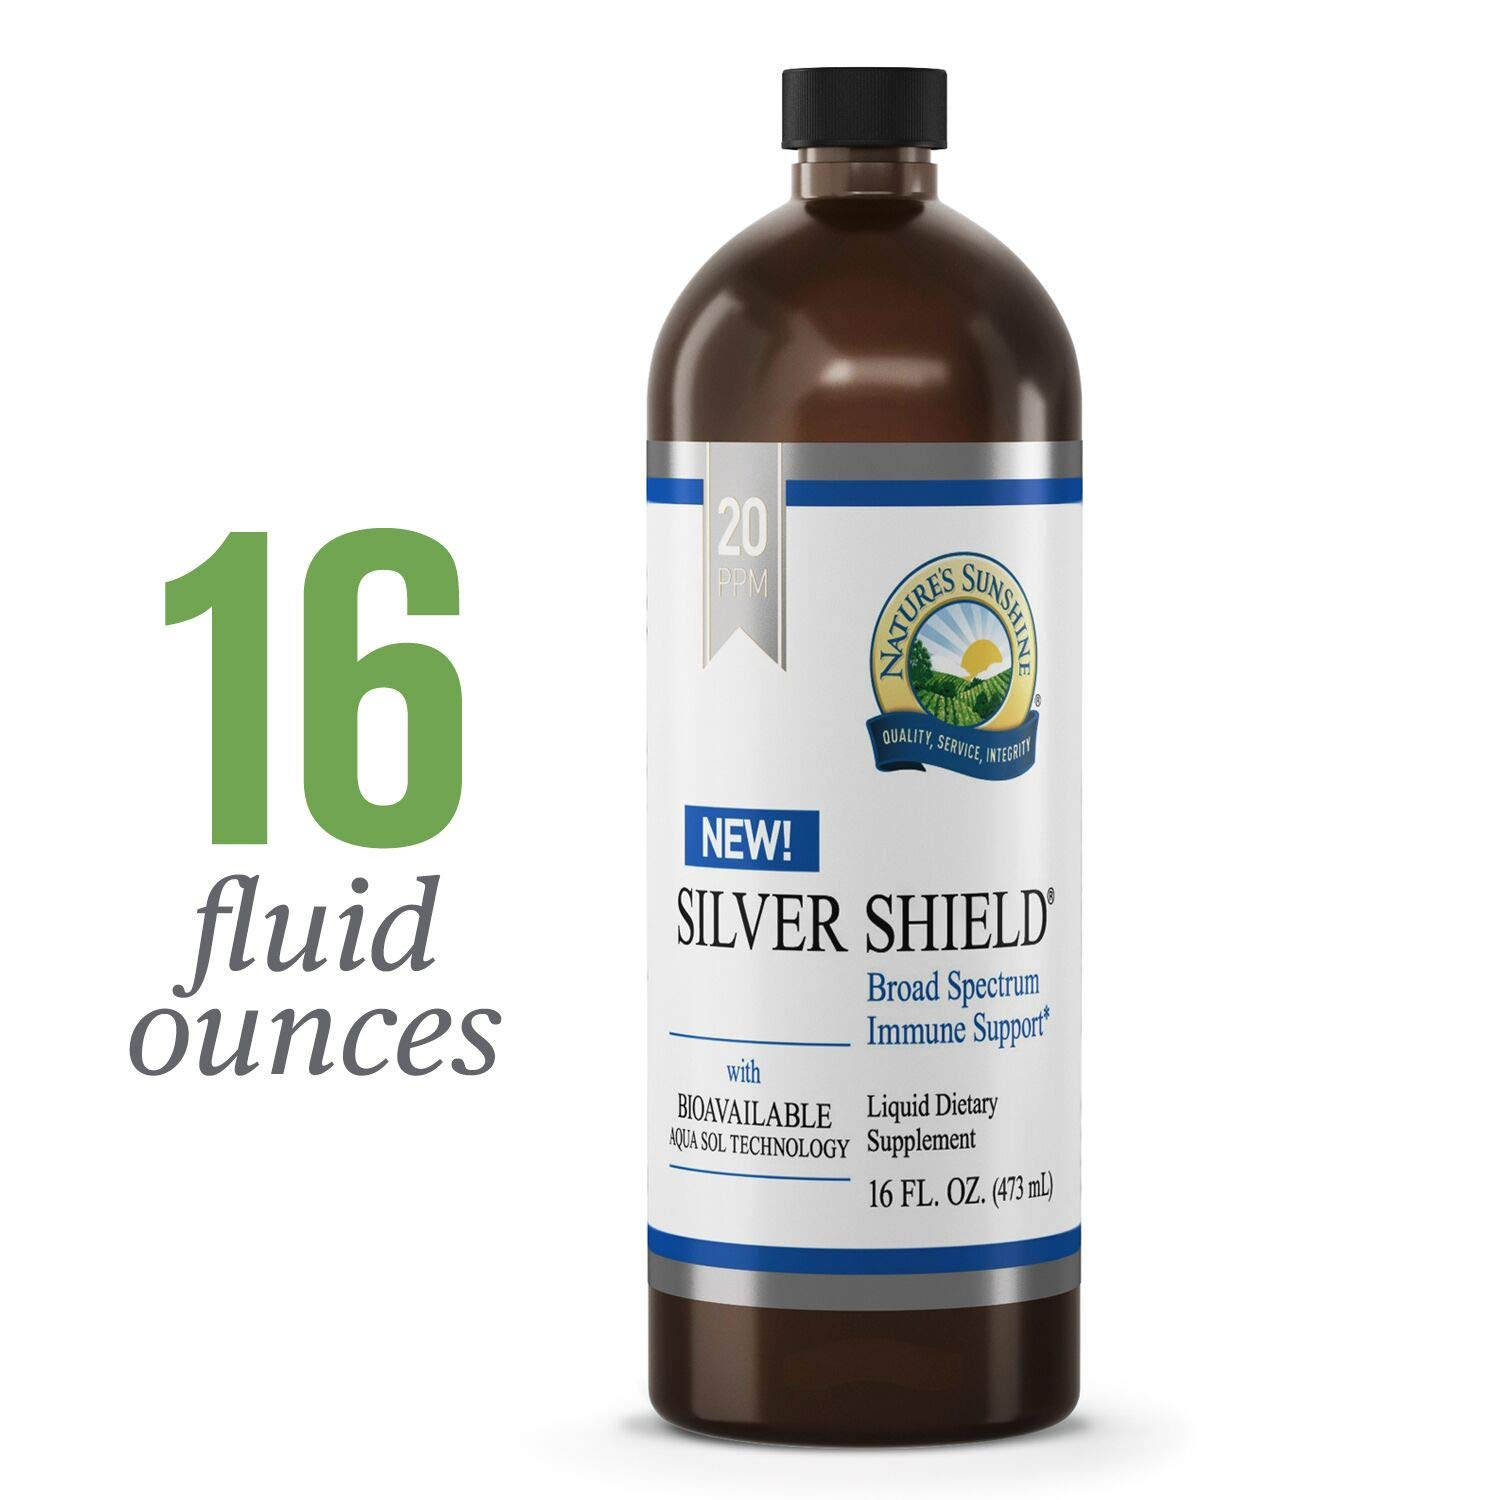 Nature's Sunshine Silver Shield Liquid, 16 fl. oz.   Colloidal Silver Liquid with Aqua Sol Technology Provides Immune Support and Protection by Nature's Sunshine